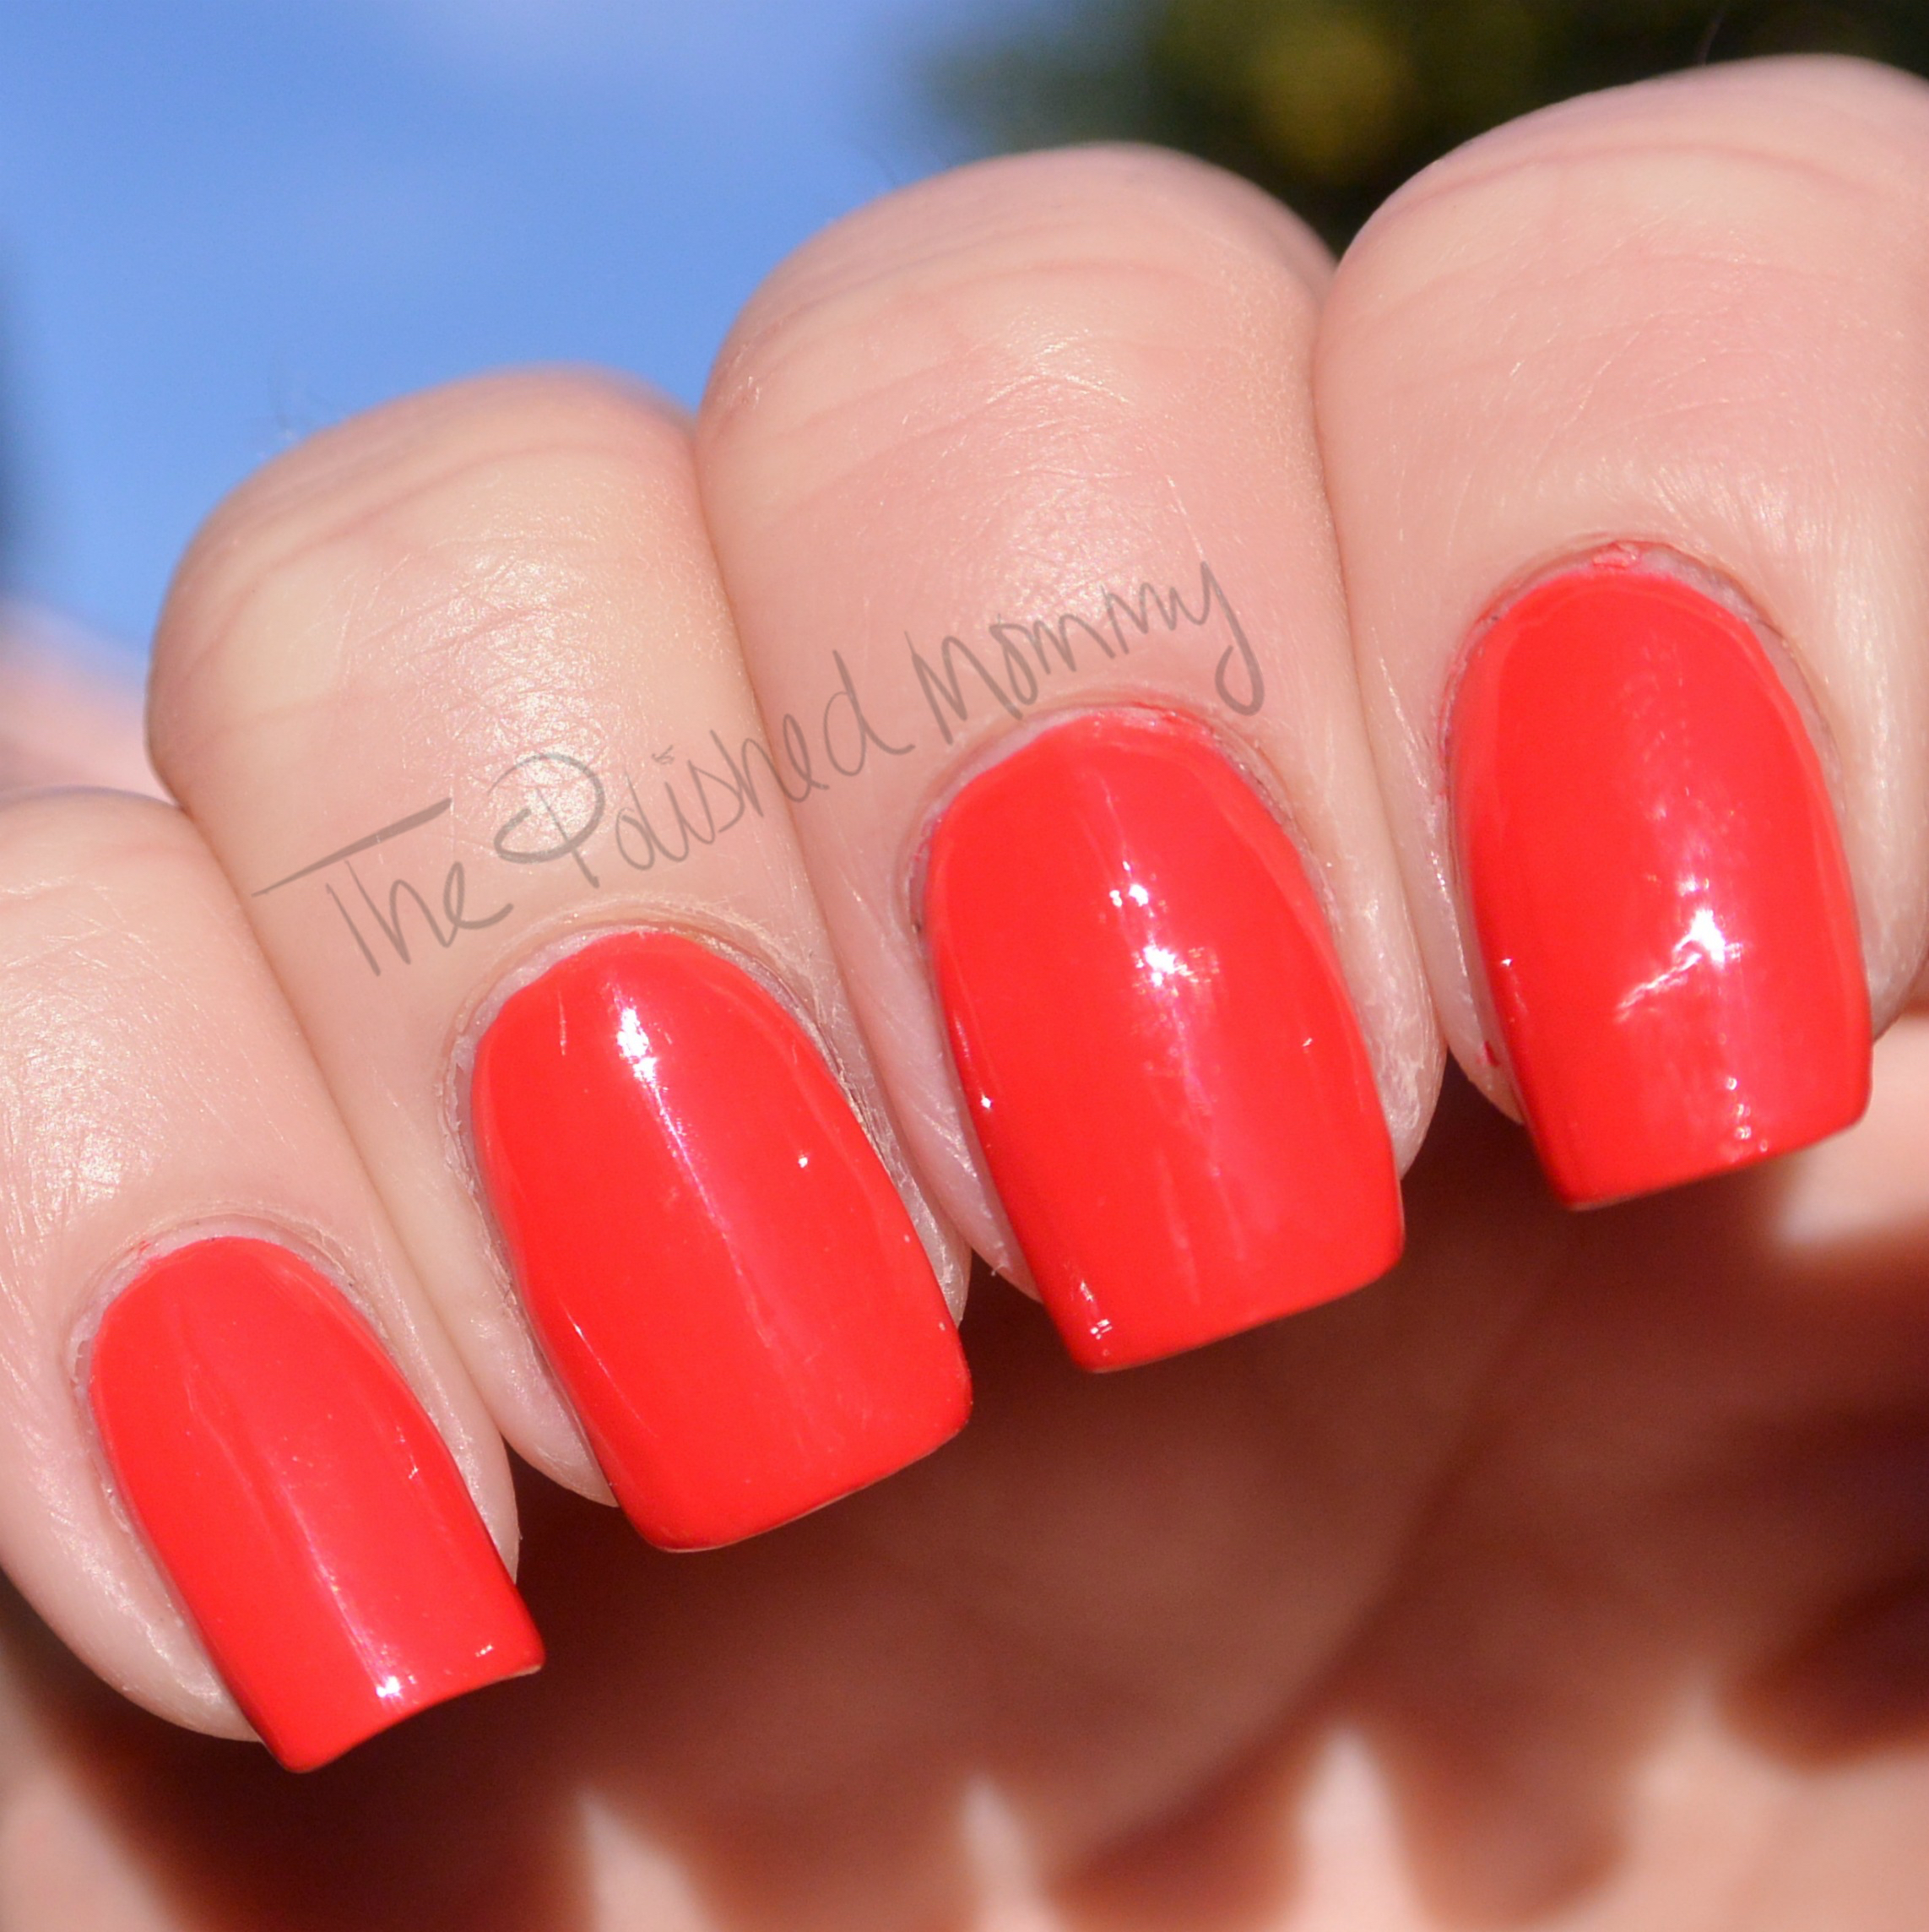 UPDATE How to Fix a Broken Nail - The Polished Mommy